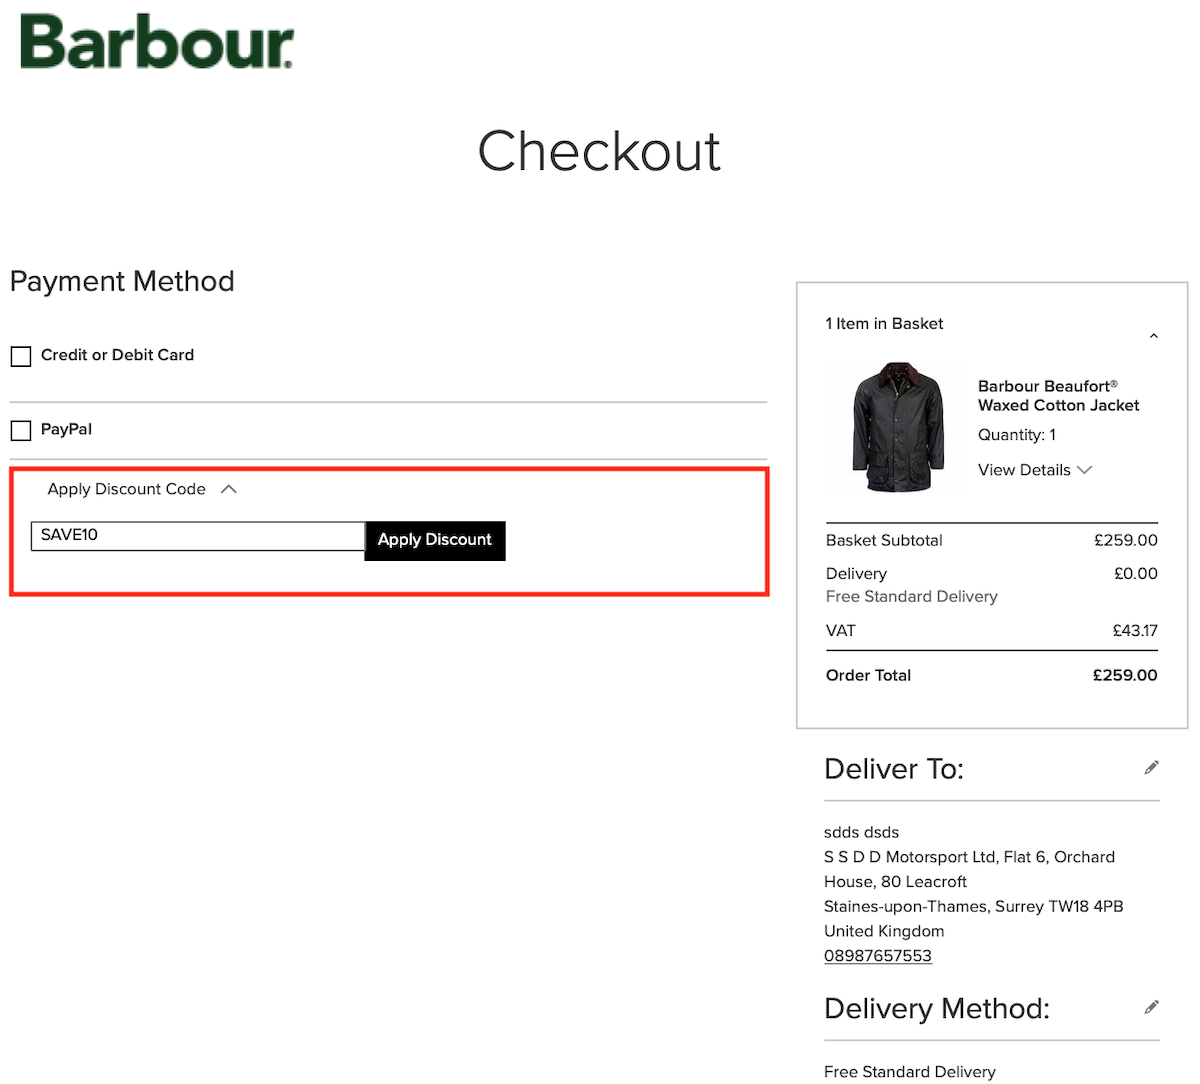 Barbour Discount Code - Voucher Code - How to instructions